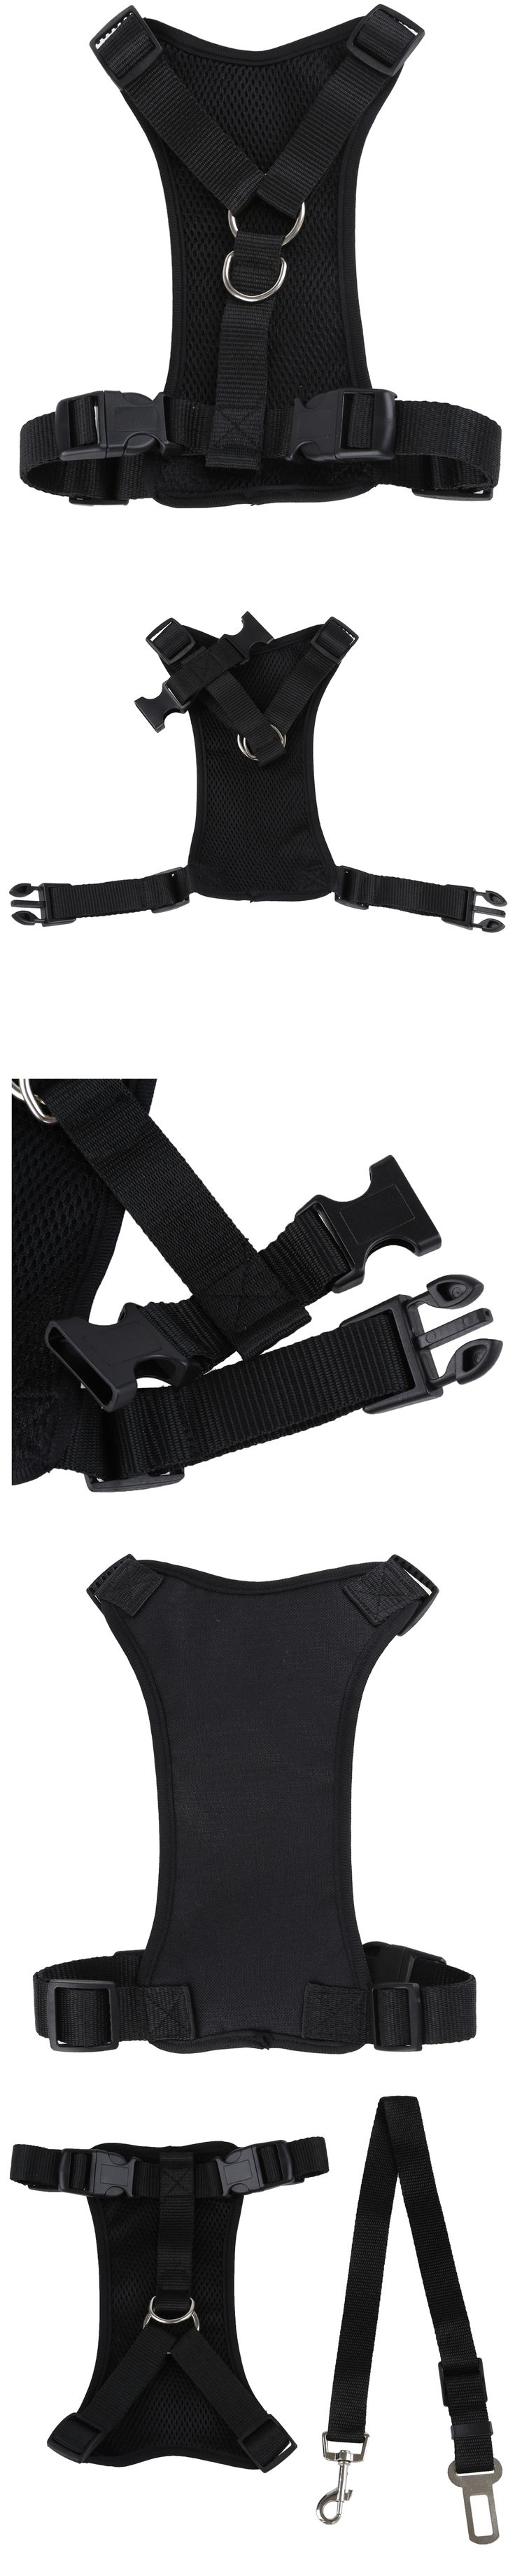 Pet dog car safety chest strap + Pet dog  car seat belt - Secure Your Pet While Driving(S)